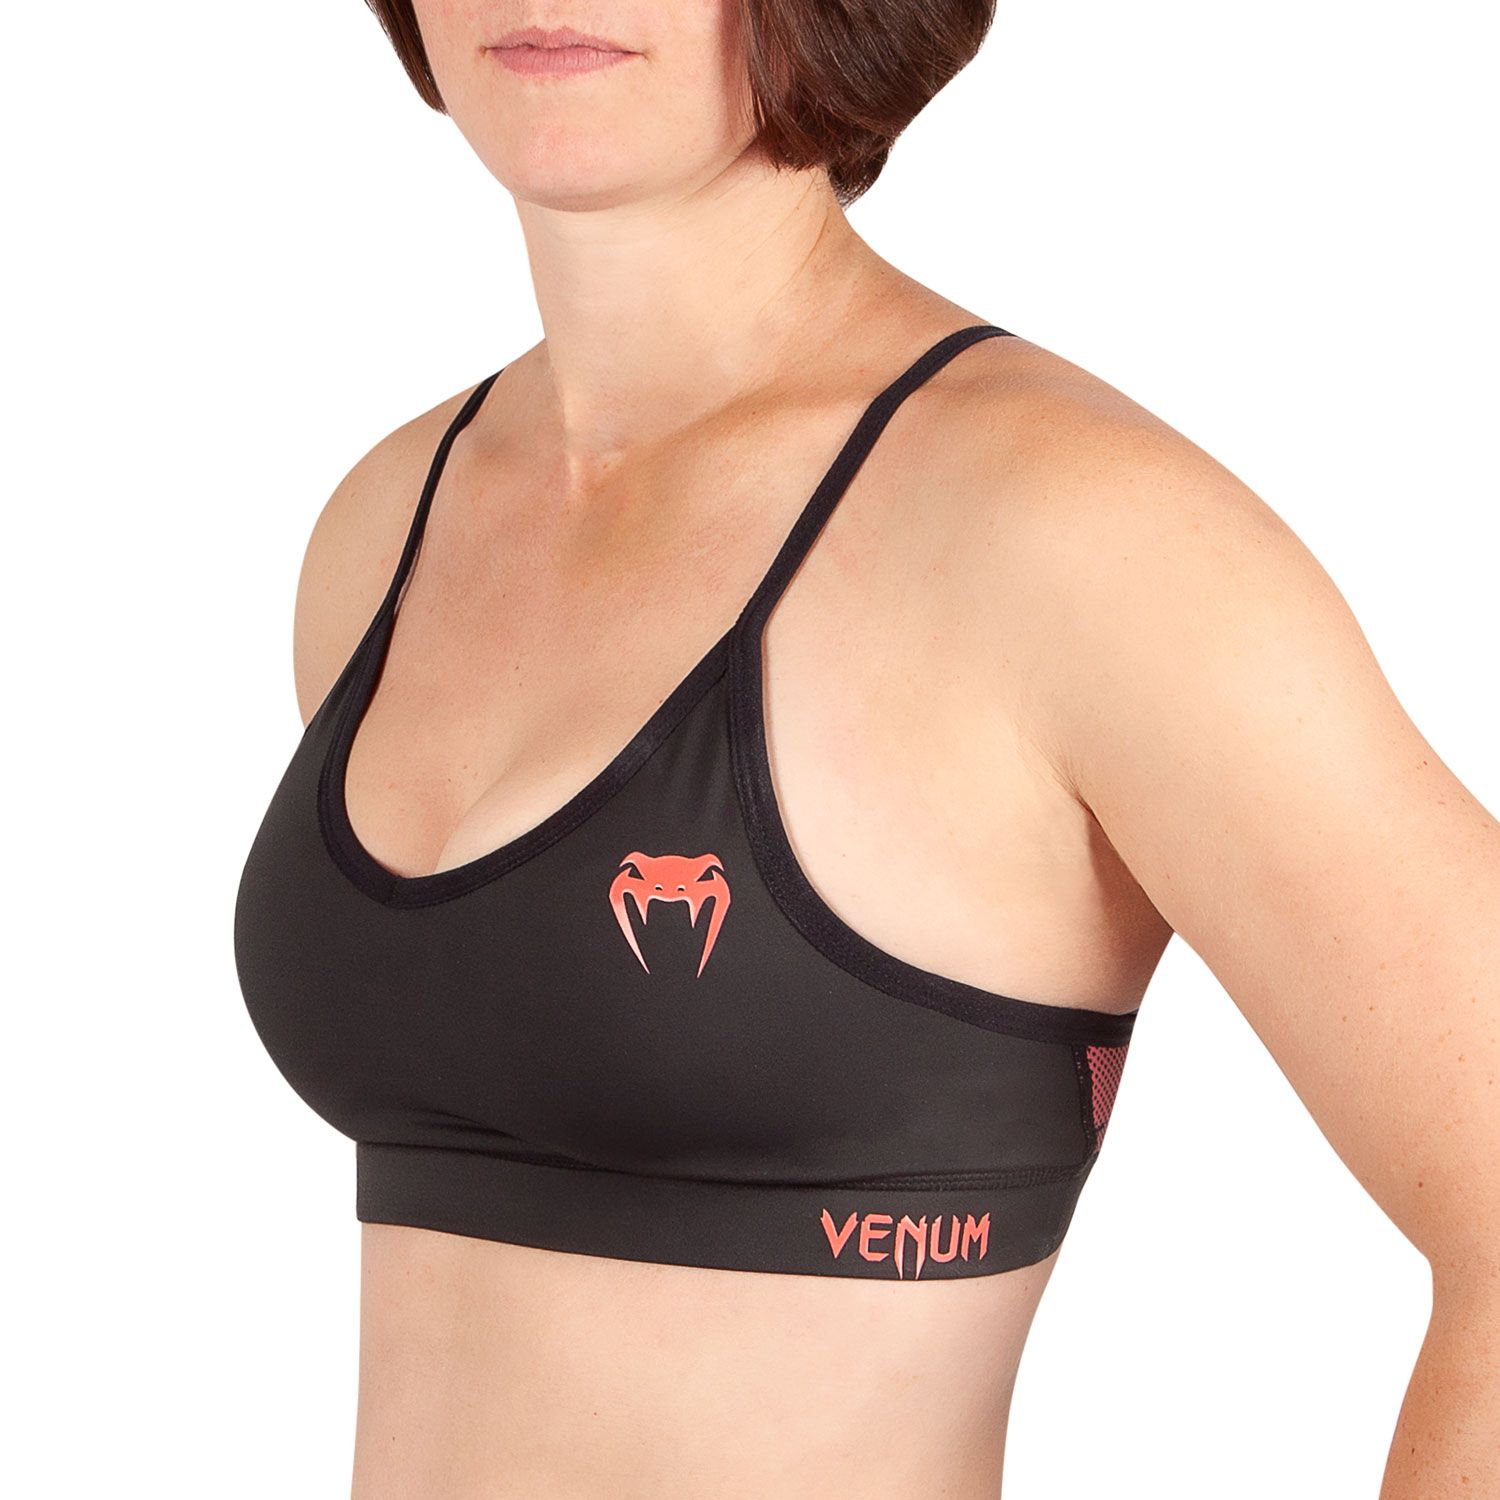 Venum Tecmo Sport Bra - For Women - Black/Coral